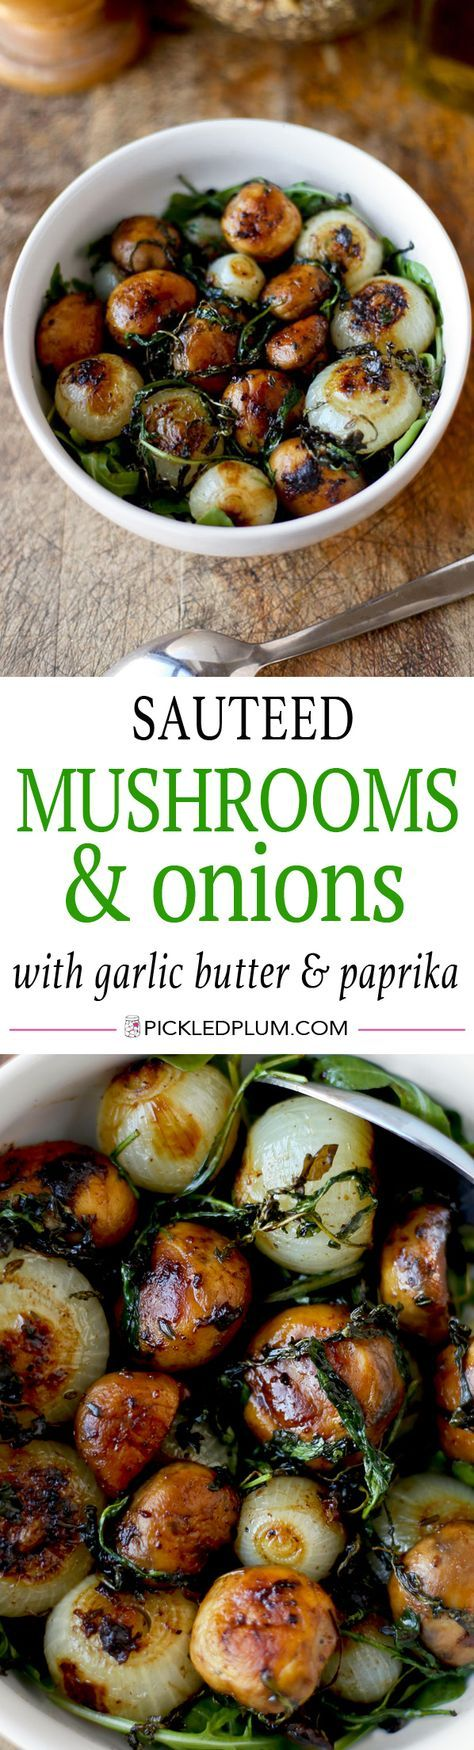 Sauteed Mushrooms and Onions with Garlic Butter and Paprika - This recipe makes a stunning side dish!